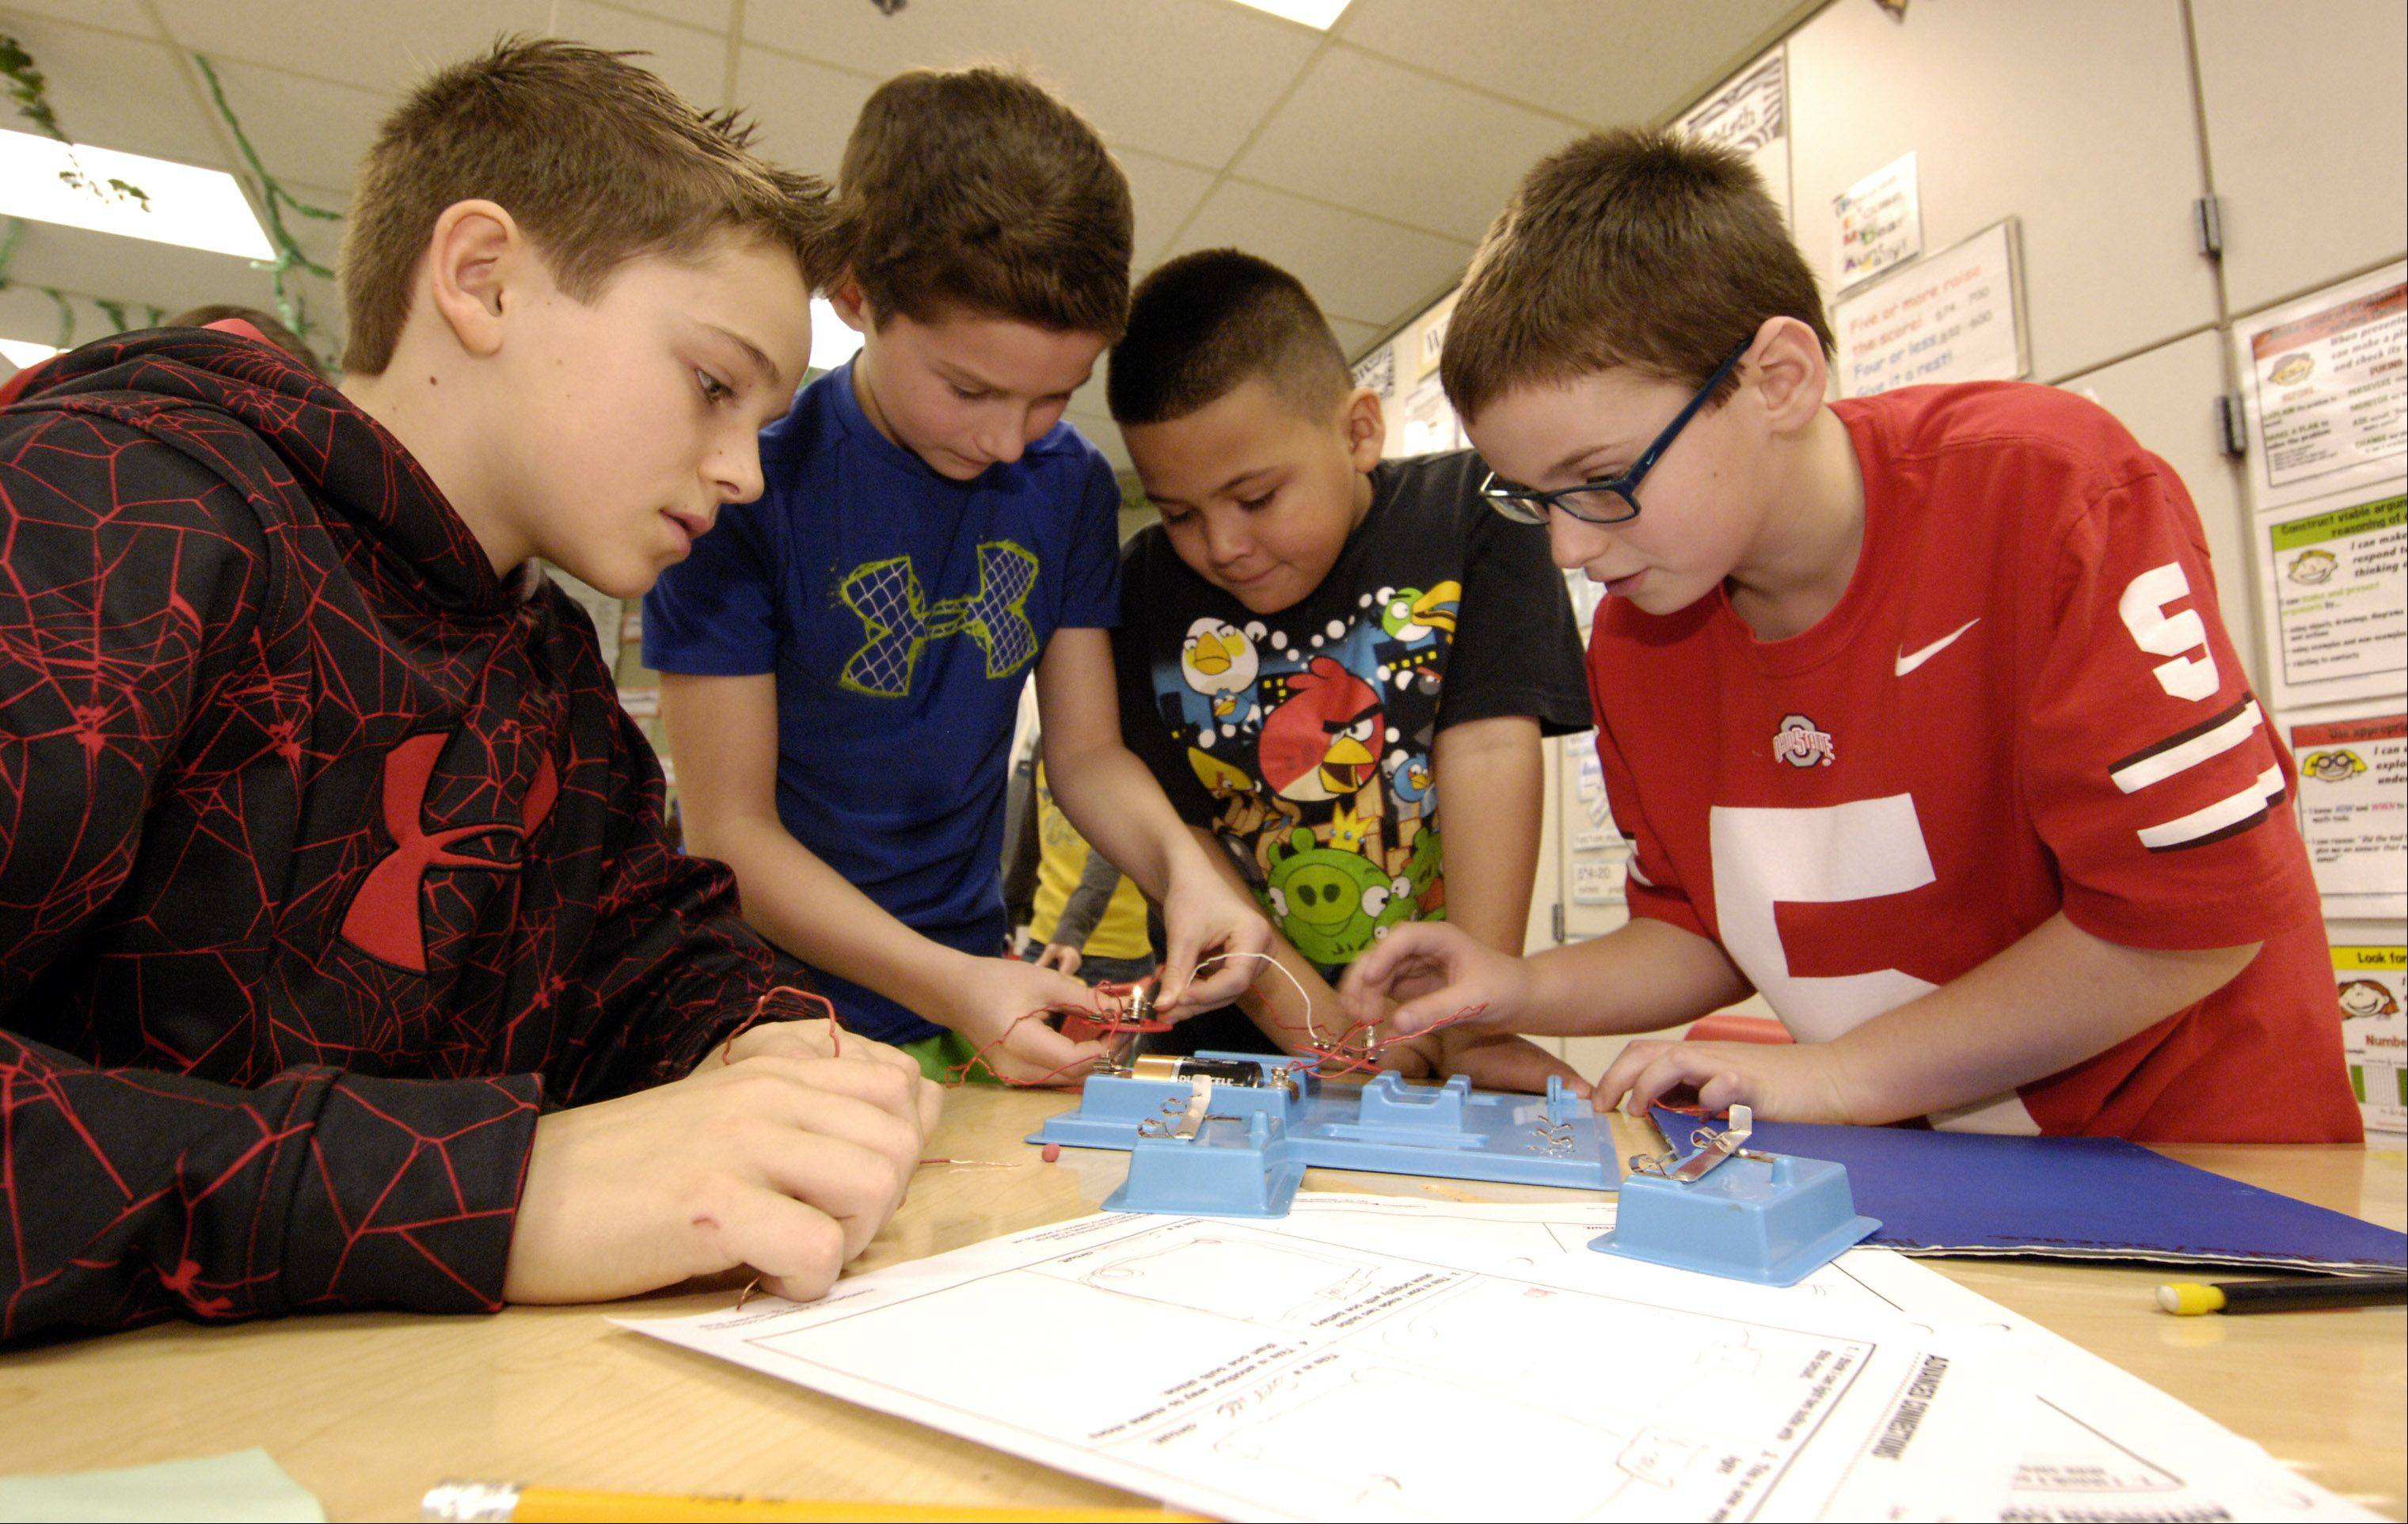 Mark Black/mblack@dailyherald.com � Fourth grade students, Michael Rossi Nathan Navarro, Mario Vences and Luke Sullivan work on their an electricity science project at Churchill School. Glen Ellyn School District 41 is proposing to combine classes as part of the Think Tank initiative, in an effort to better focus on science, math and literacy instruction.